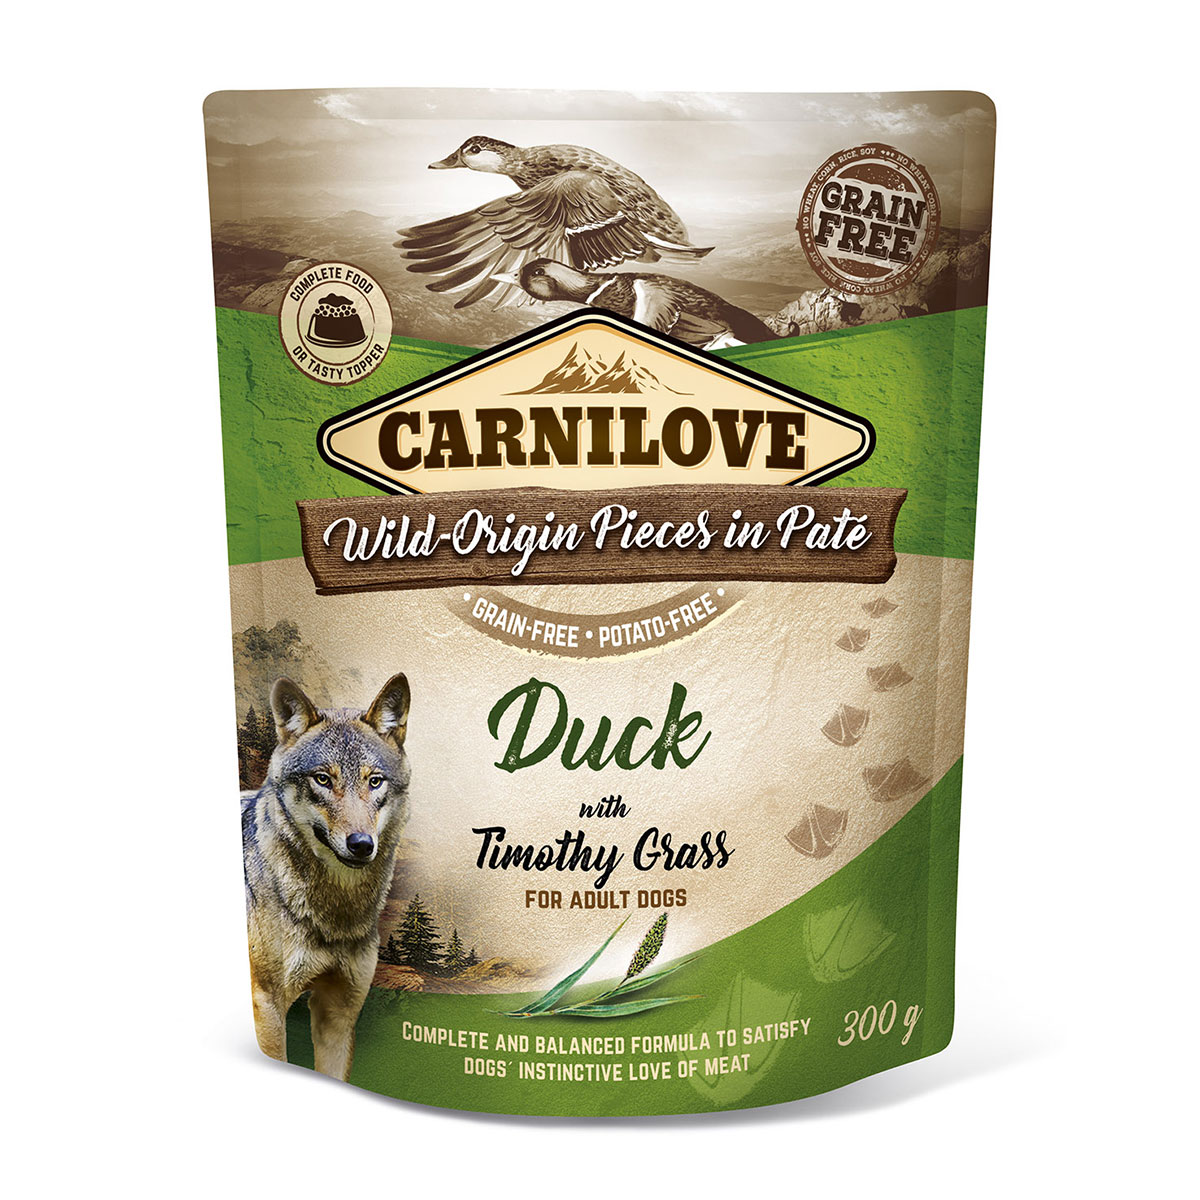 Carnilove Dog Pouch Paté Duck with Timothy Grass 300g